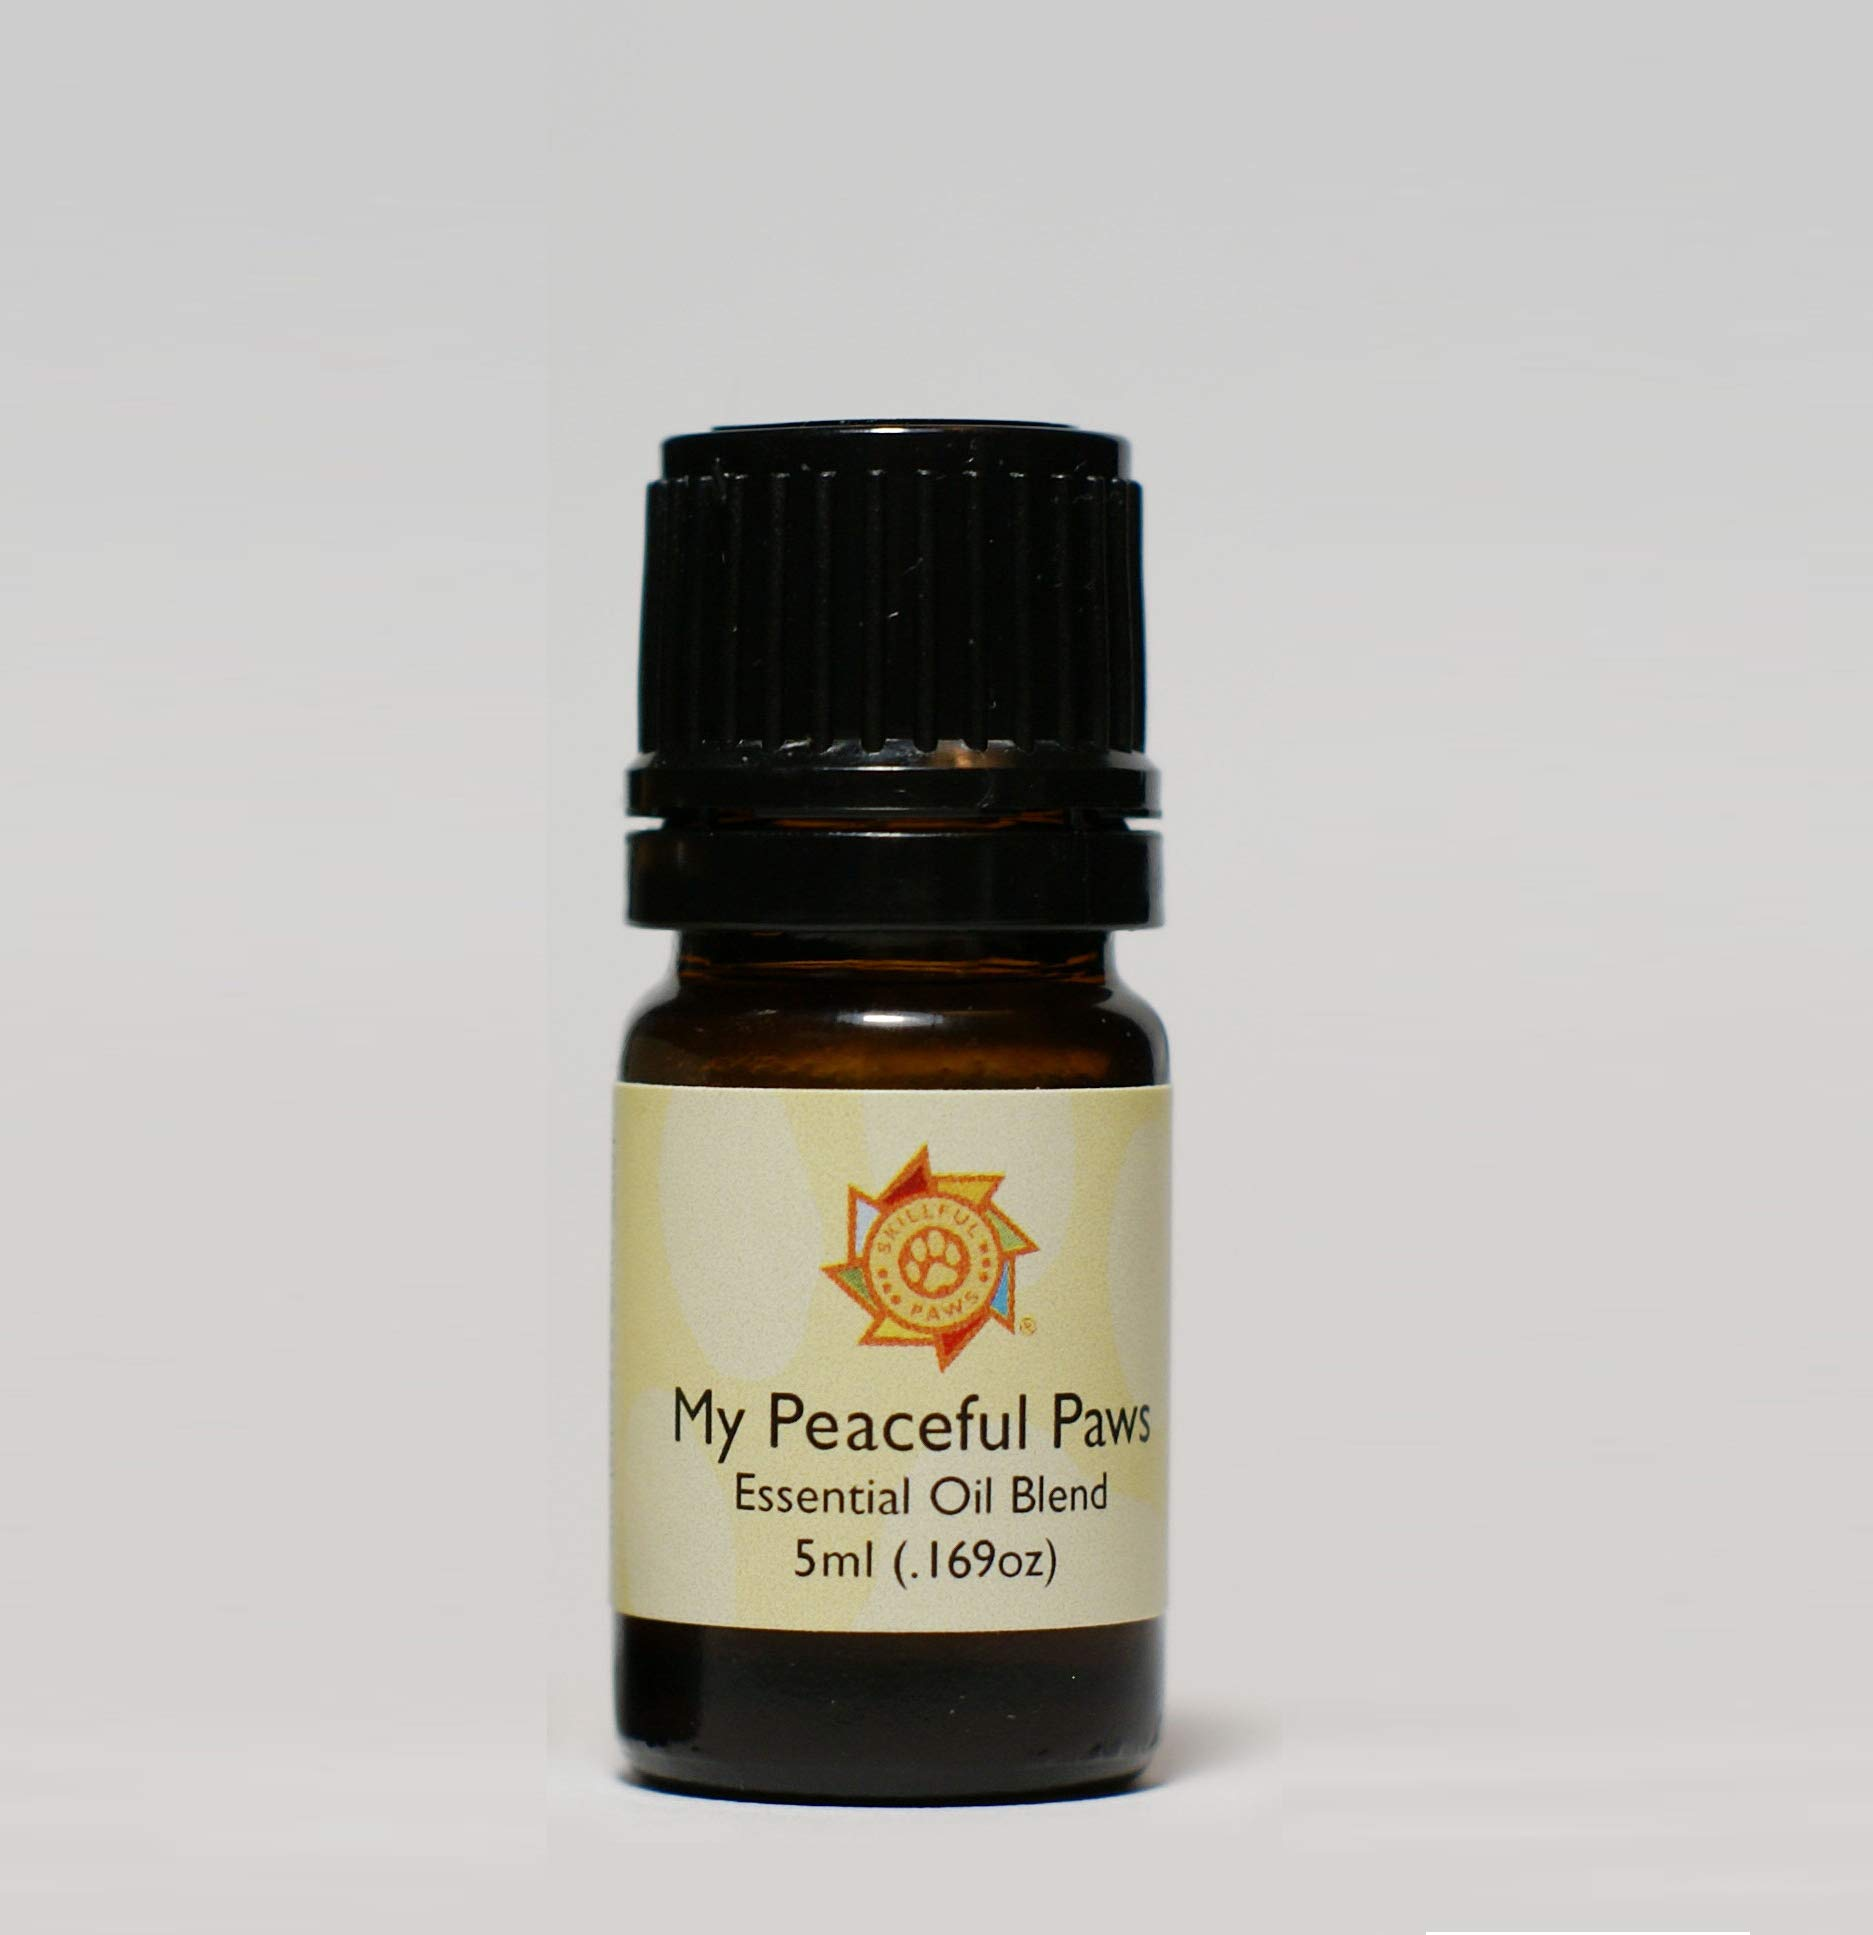 My Peaceful Paws (5ml /.169oz) - Essential Oil Calming Blend for Dogs. Topical Application for Separation Anxiety, Fear of Storms, Fireworks, and Stress in Daily Life